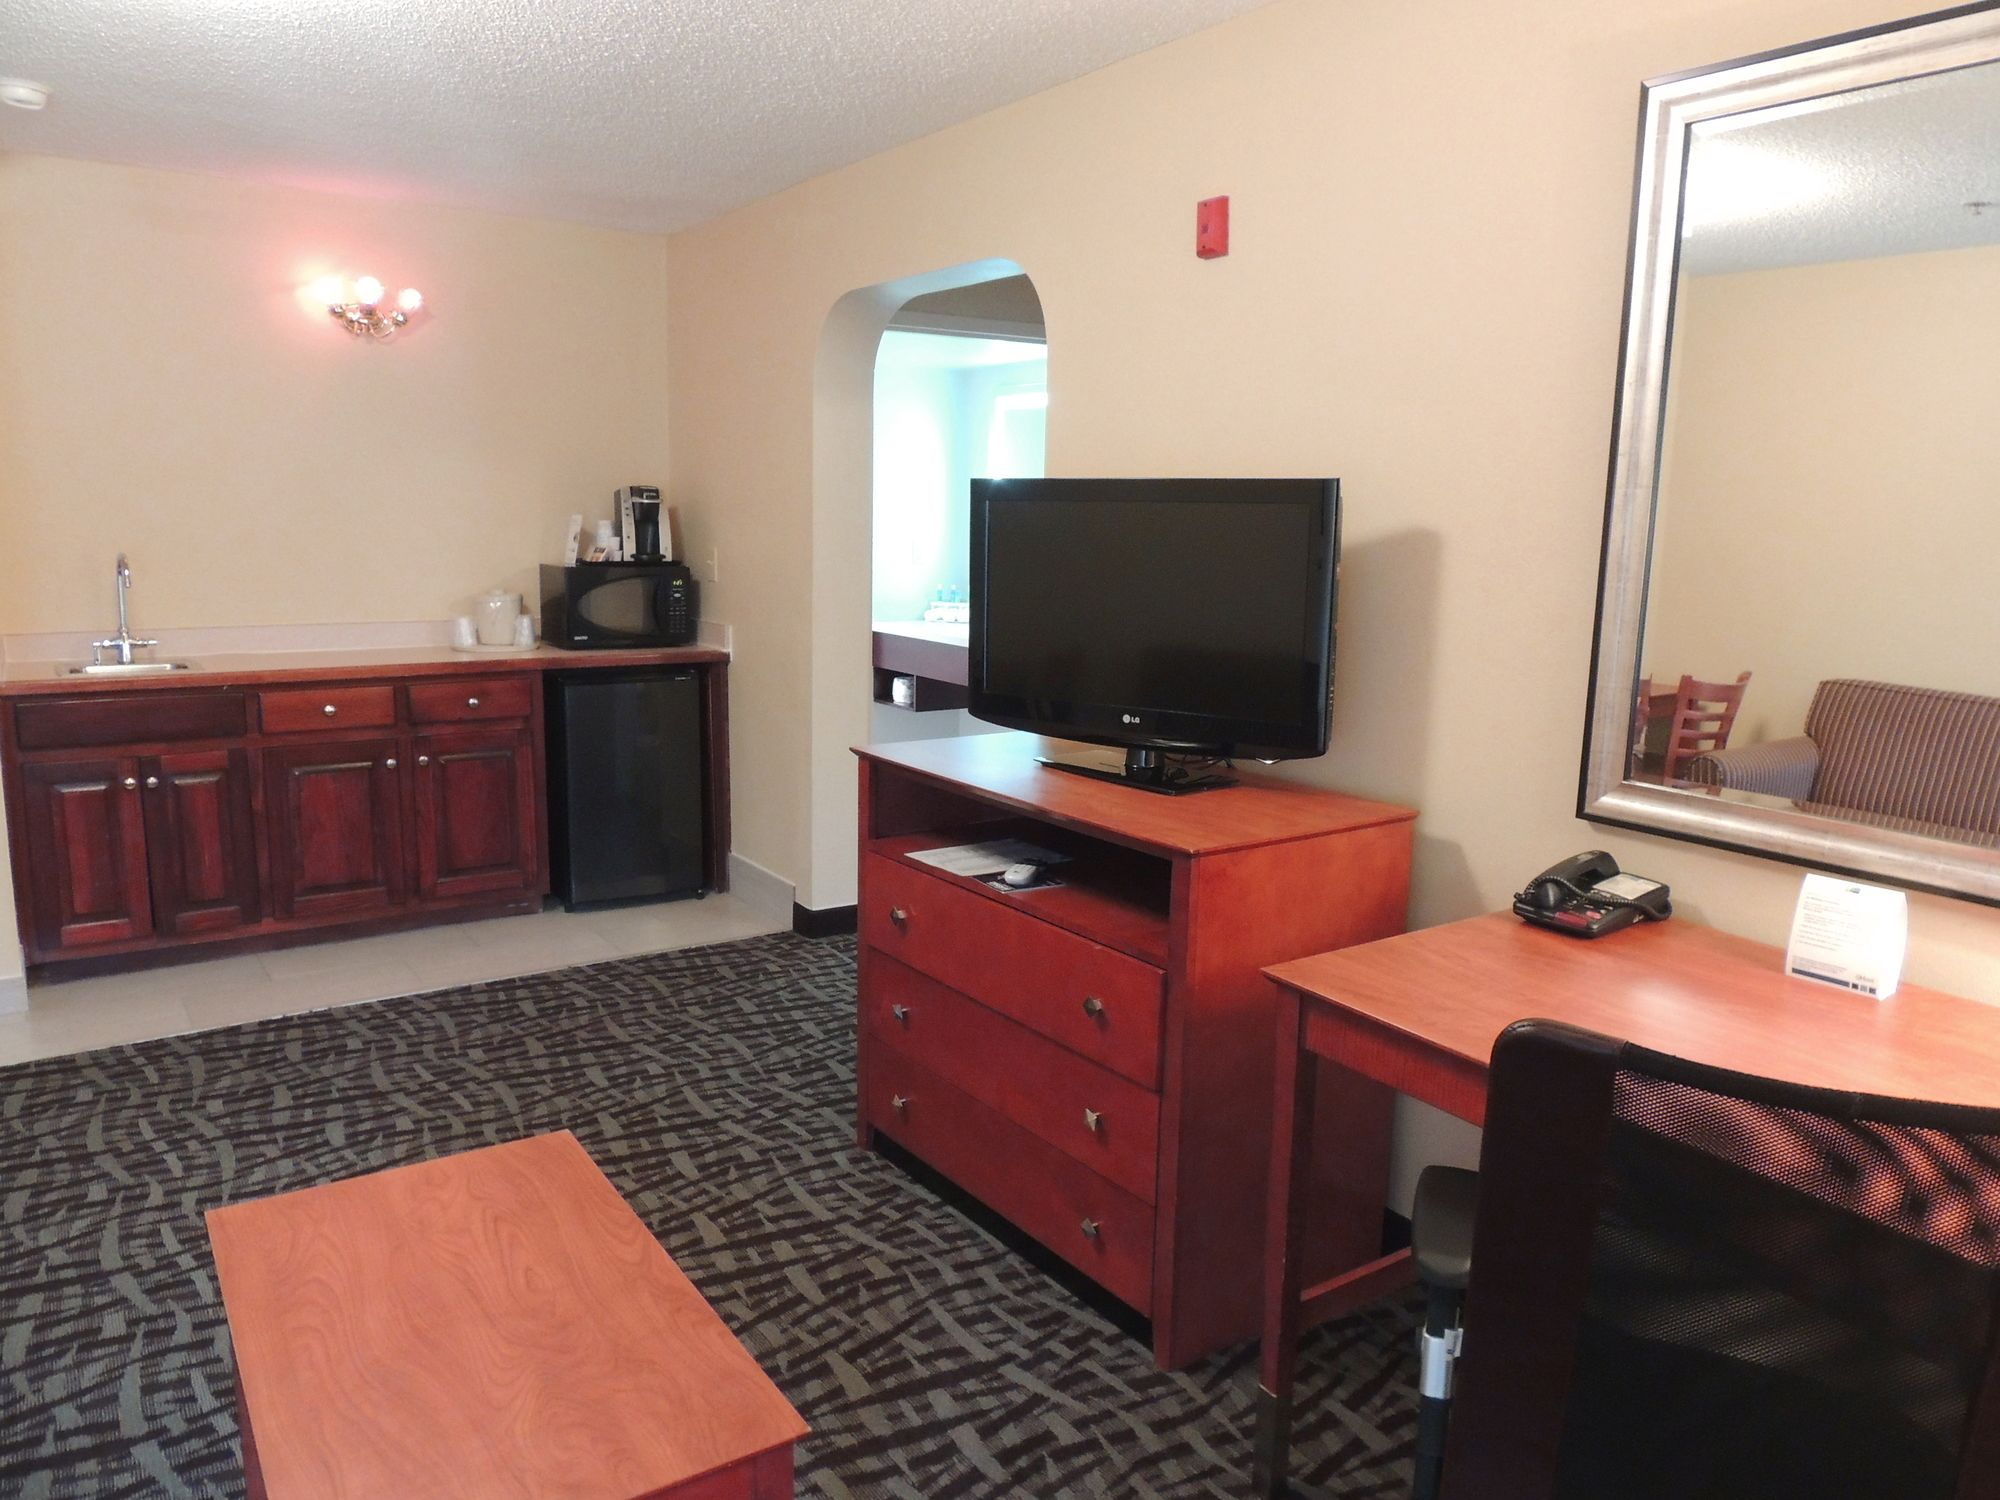 Holiday Inn Express & Suites Birmingham Trussville